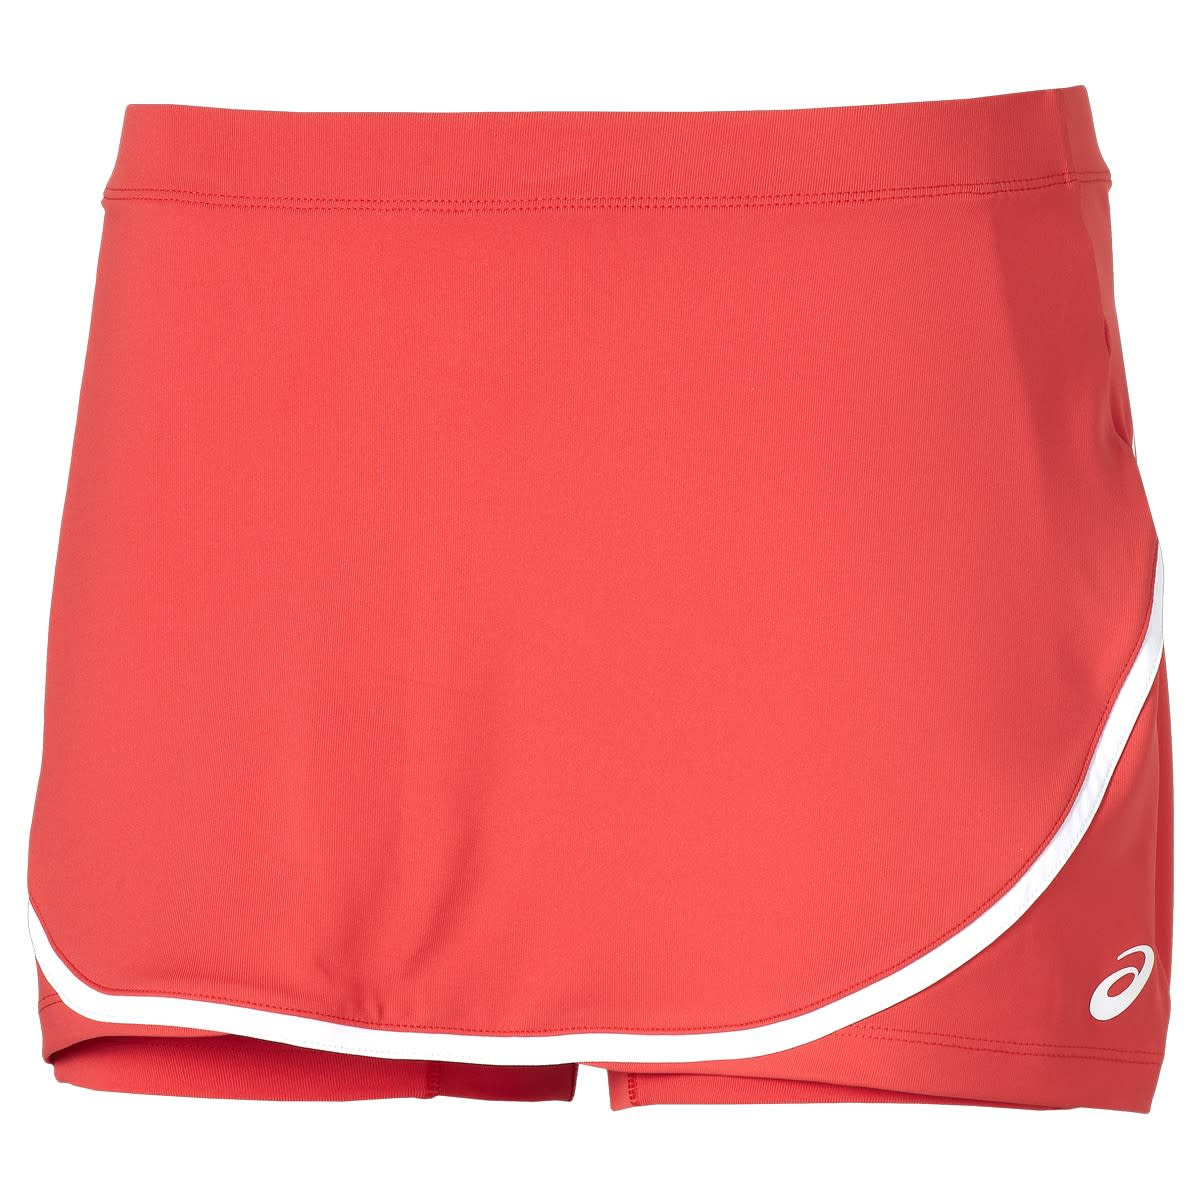 Asics Orange Basic Tennis Skirt